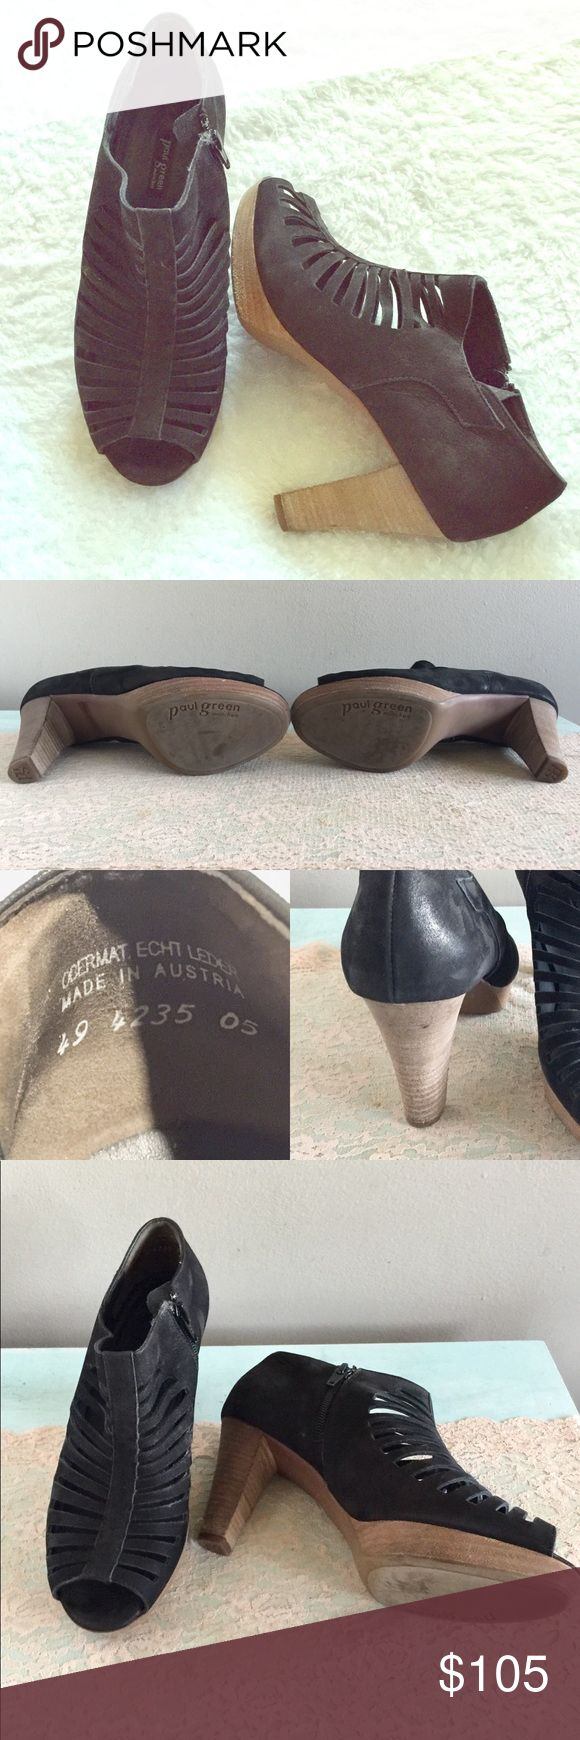 """Paul Green Open Toe Booties Great pair of black Paul Green Munchen Booties!  Soft Leather with a stacked wood platform heel, and a side zipper.  The heel is 3 1/4"""".  Size 5 EU, which is equivalent to 7 1/2"""" in American sizing.  Great condition with minimal wear. Paul Green Shoes Ankle Boots & Booties"""